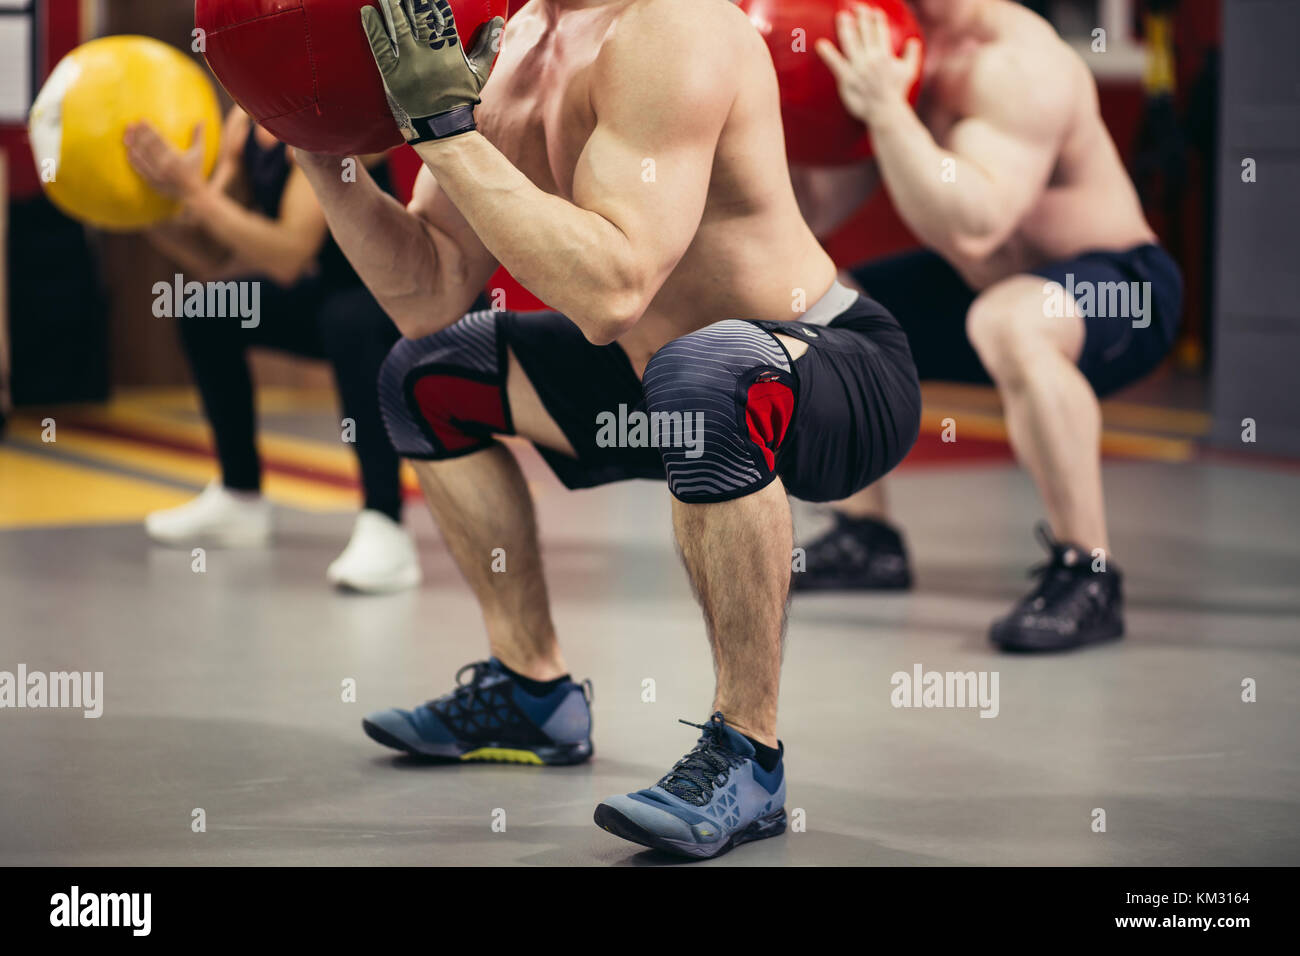 Cross fit ball fitness workout - Stock Image